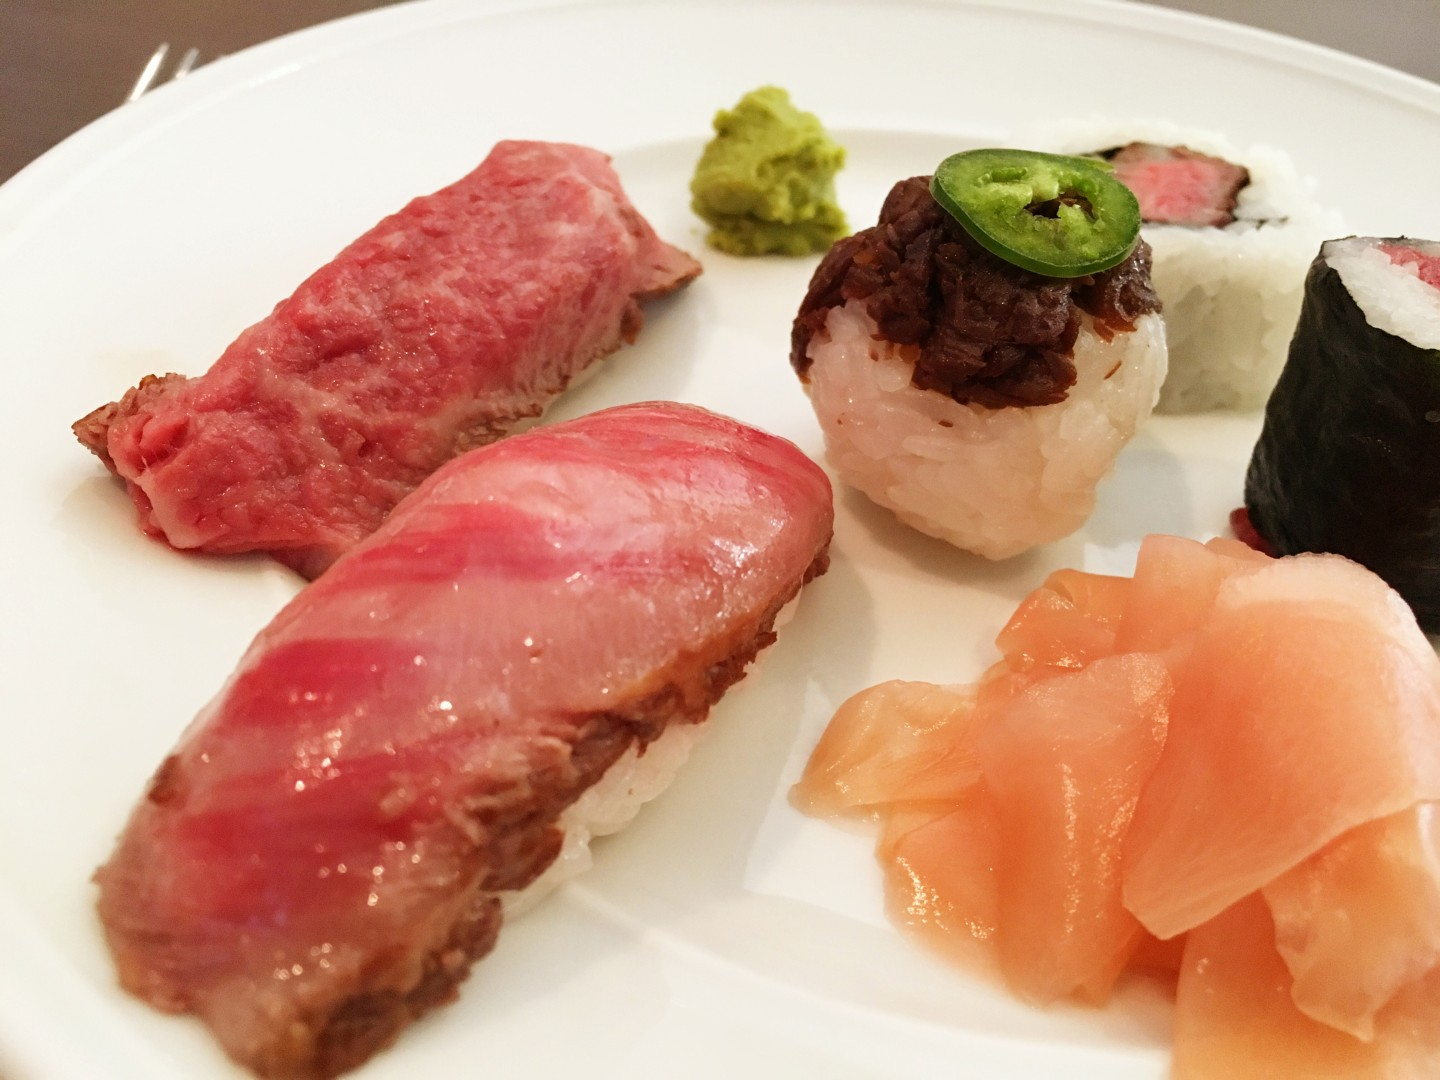 Matsusaka beef sushi platter, clockwise from the shiny on the front left: New York Strip tataki nigiri, flash-seared filet sushi roll, raw filet maki roll, spicy tuna roll, round beef cooked in mirin and soy and topped with jalapeno